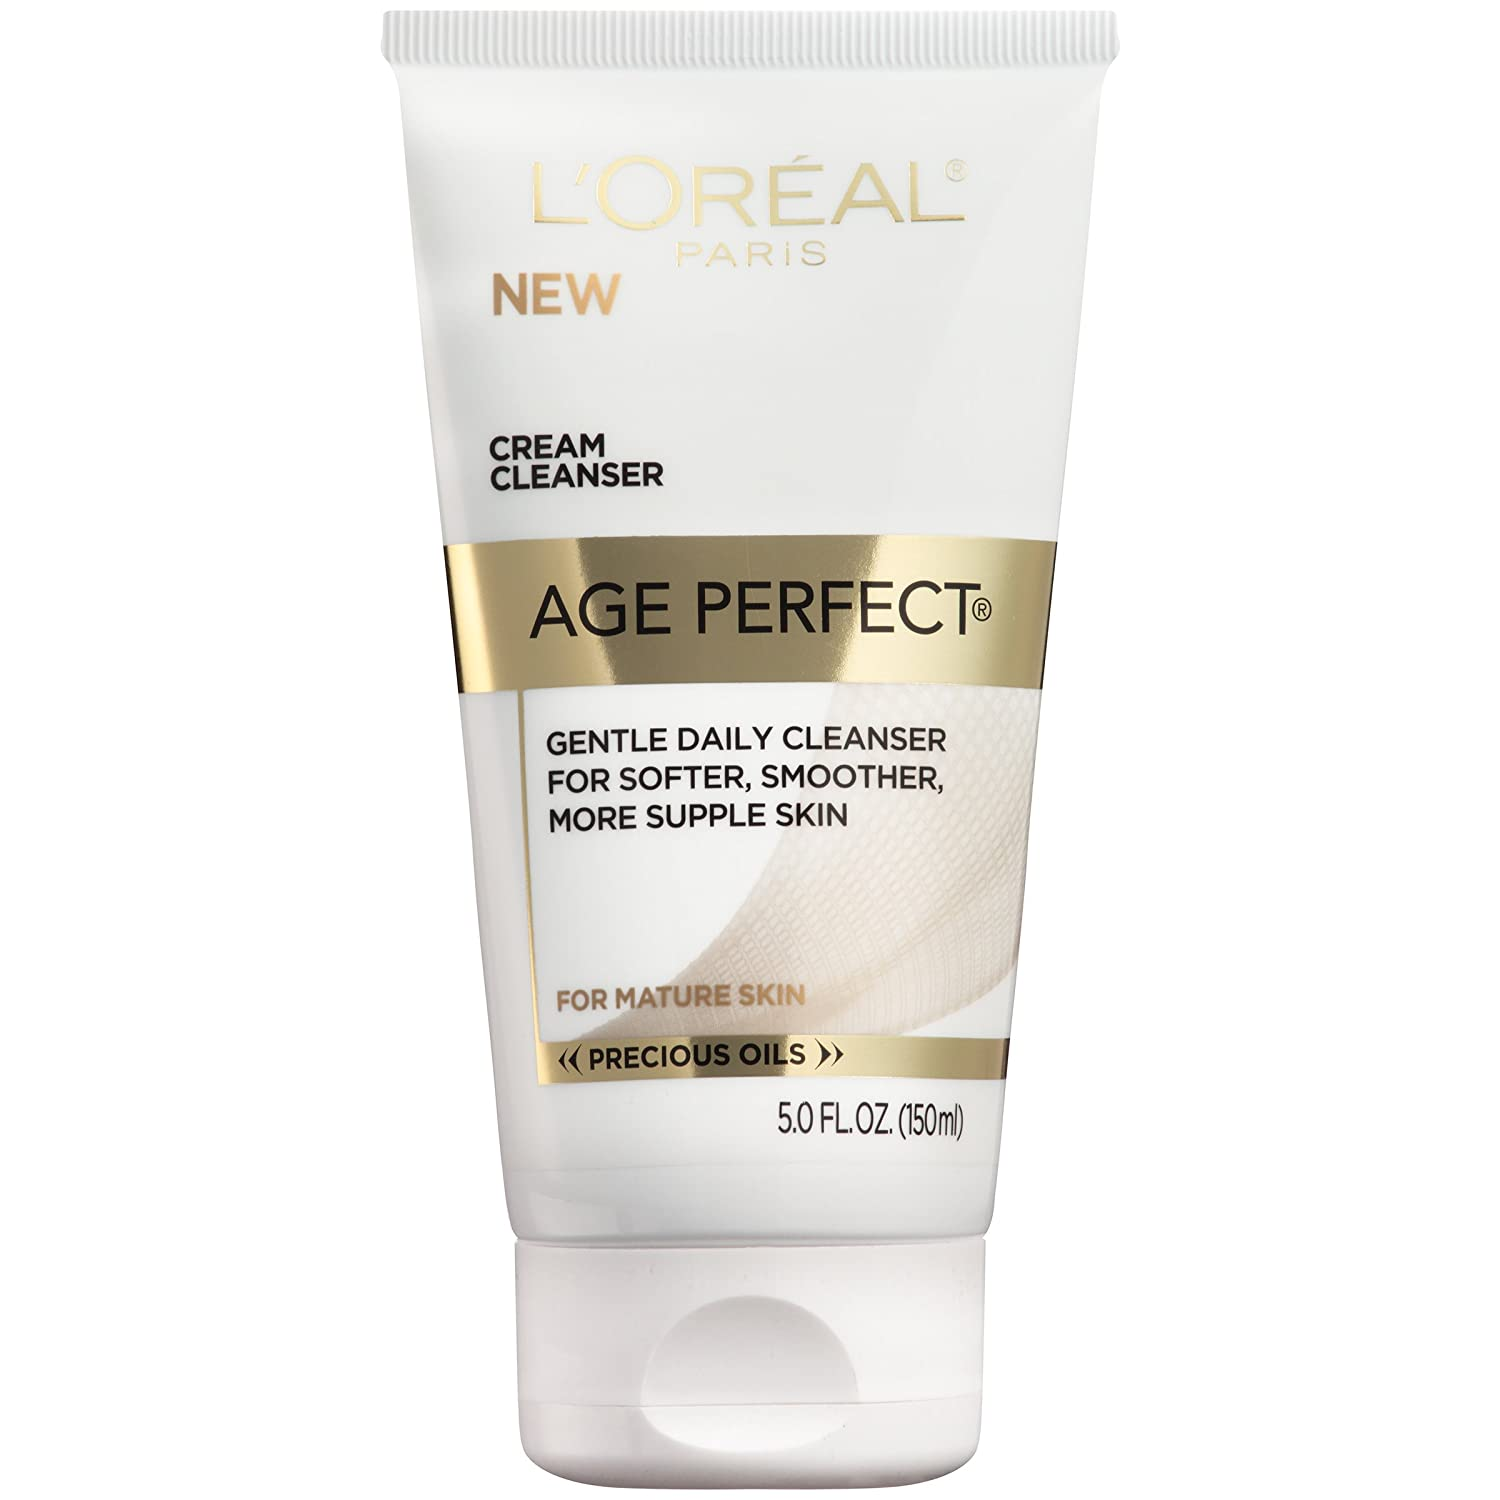 L'Oreal Paris Skincare Age Perfect Anti-Aging Cream Facial Cleanser, 5 fl. oz.